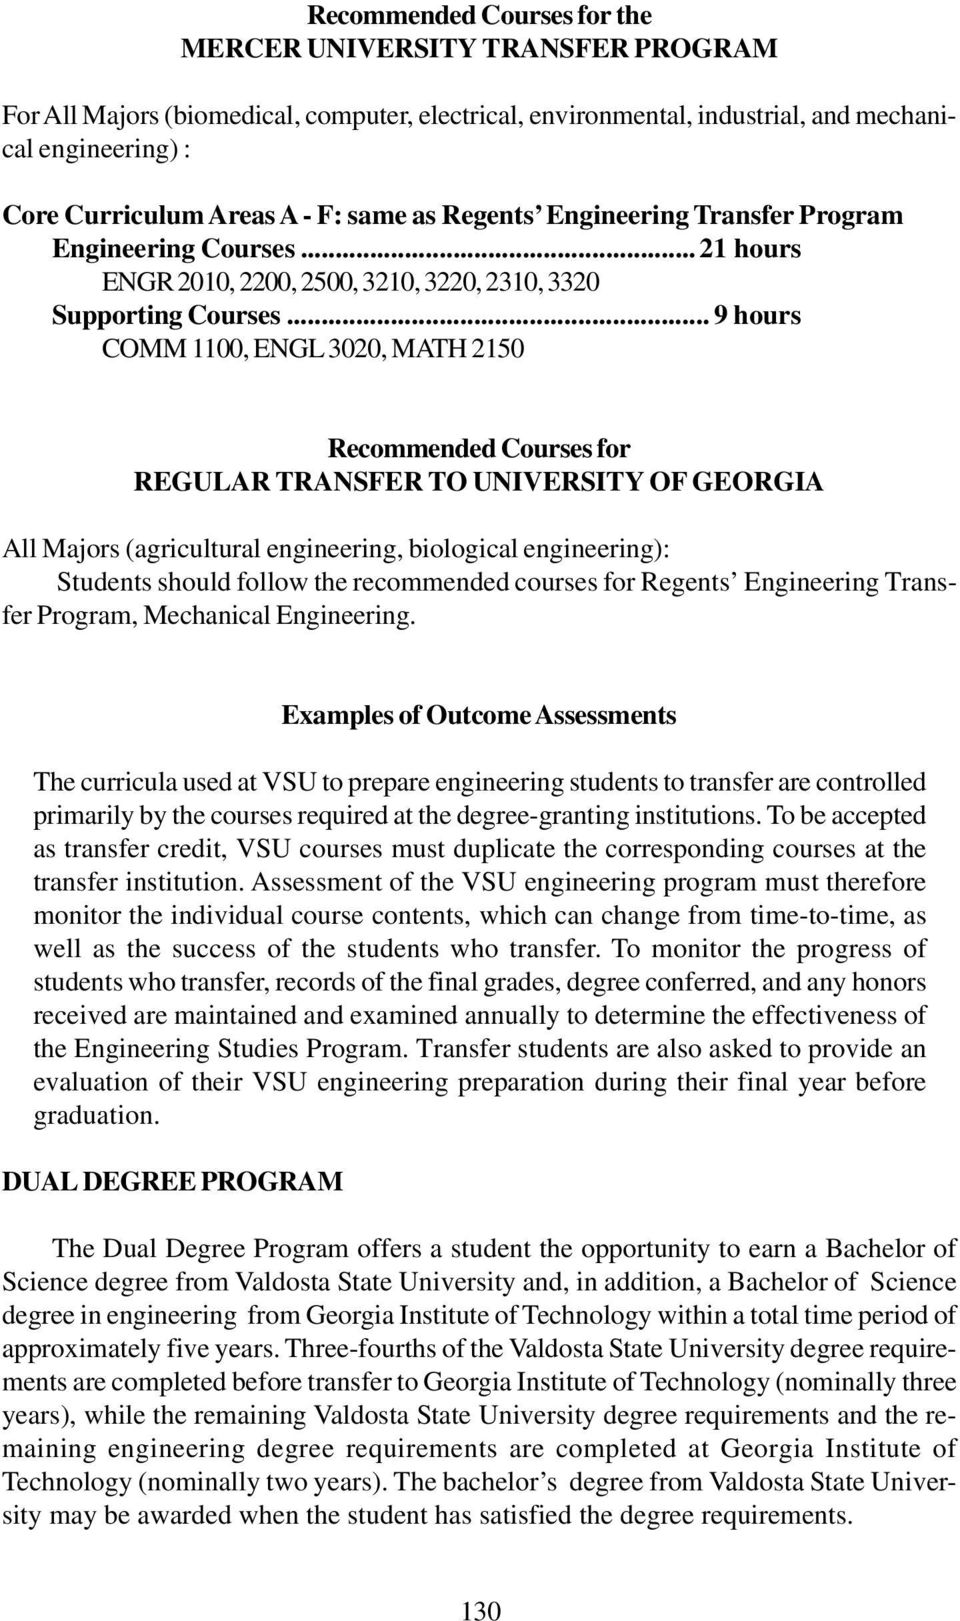 .. 9 hours COMM 1100, ENGL 3020, MATH 2150 Recommended Courses for REGULAR TRANSFER TO UNIVERSITY OF GEORGIA All Majors (agricultural engineering, biological engineering): Students should follow the